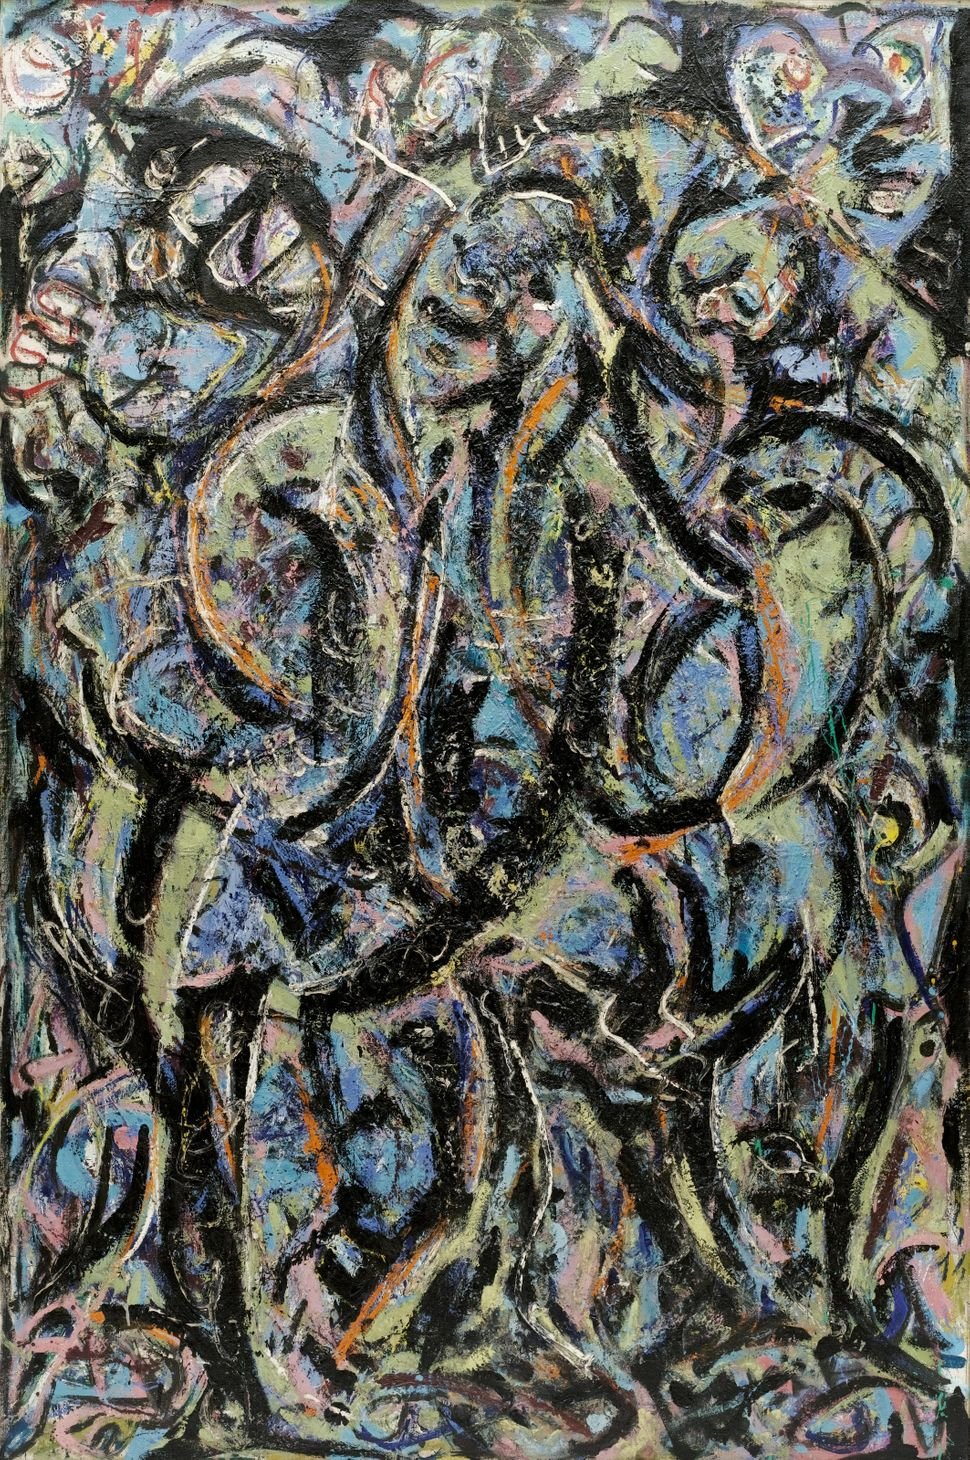 "Jackson Pollock (American, 1912-1956). Gothic. 1944. Oil on canvas, 7' 5/8"" x 56"" (215.5 x 142.1 cm). The Museum of Modern Ar"